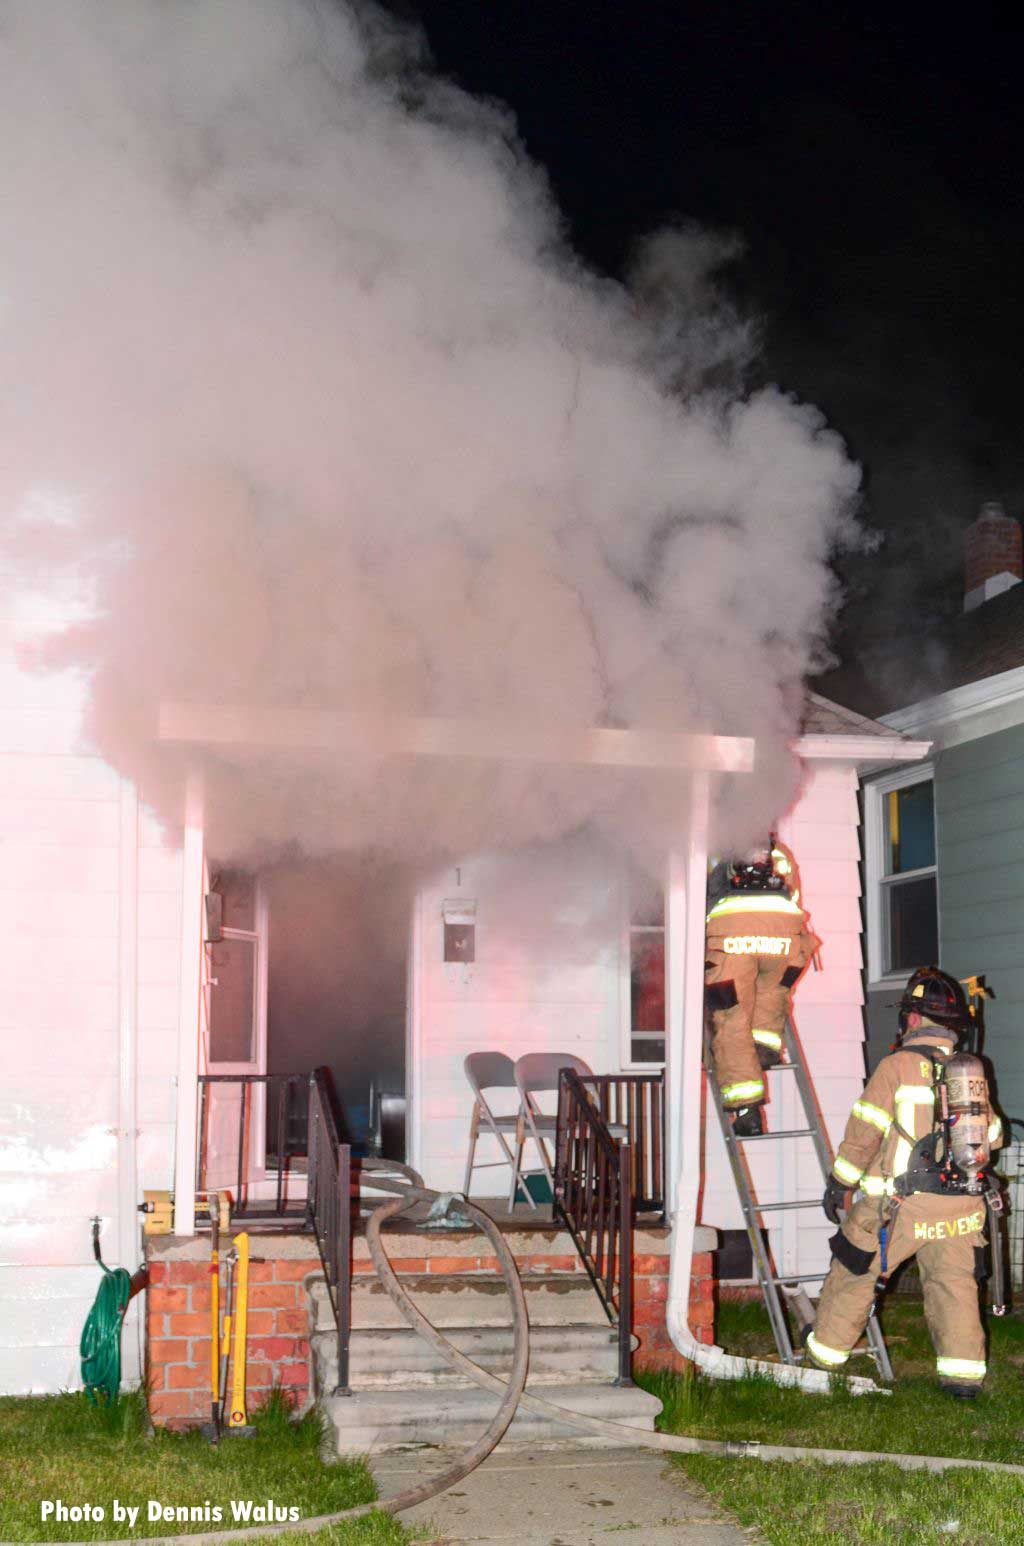 Fire companies working at a house fire